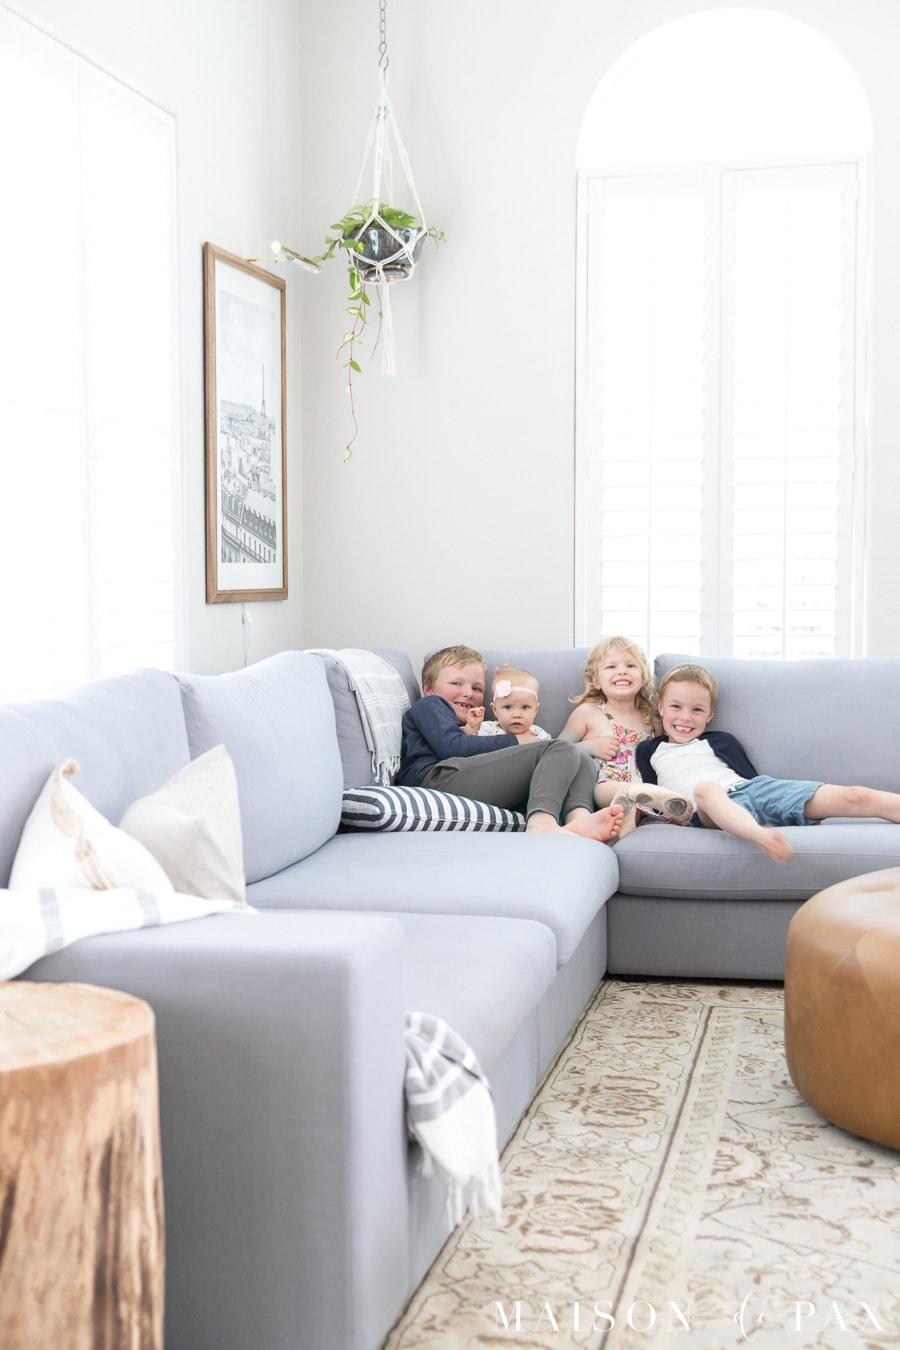 Sectional Sofa Living Room Layout How To Decorate A Living Room With A Sectional Maison De Pax